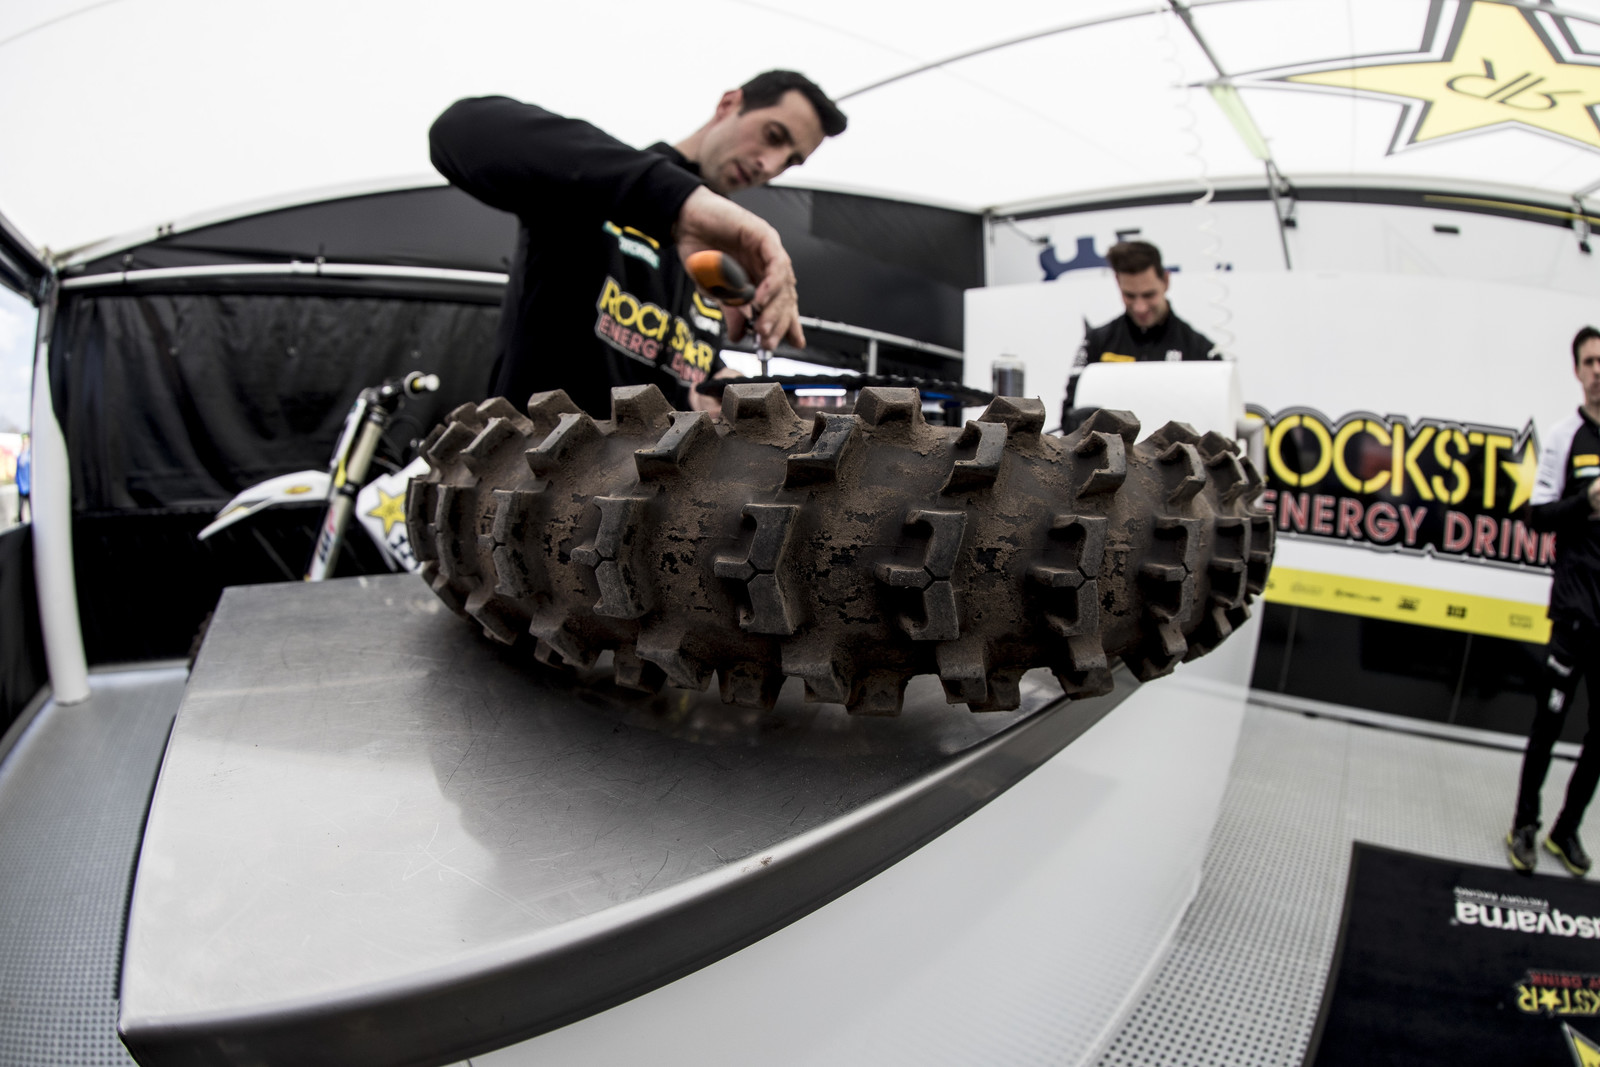 We'll be looking at a lot of the sand tires from this round. Here, under the Rockstar Energy Husqvarna tent, you can see a prototype sand tire from Dunlop. This isn't an MX11 or MX12, their currently available MX sand tires.